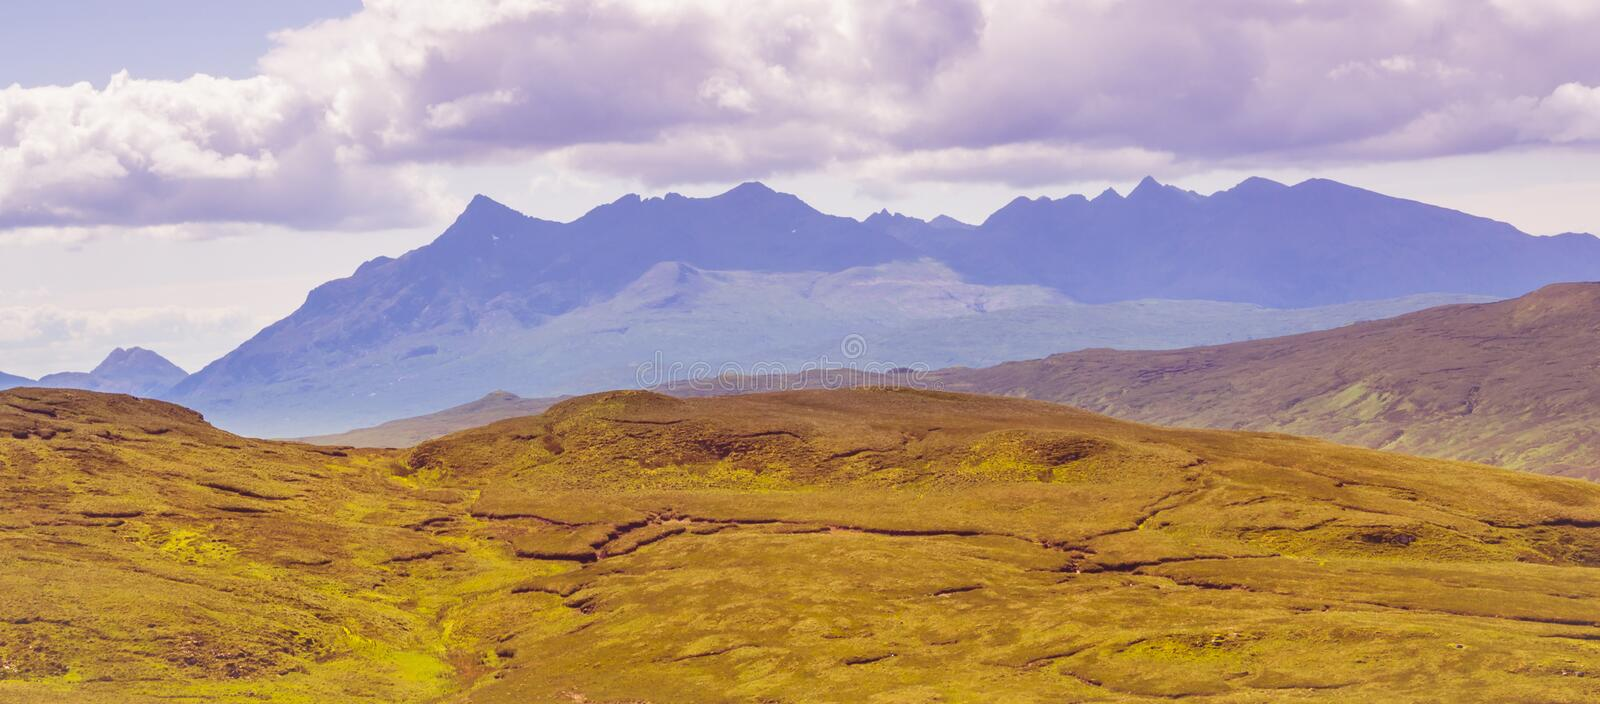 The Cuilin mountain range on the Isle of Skye, Scotland, UK royalty free stock images